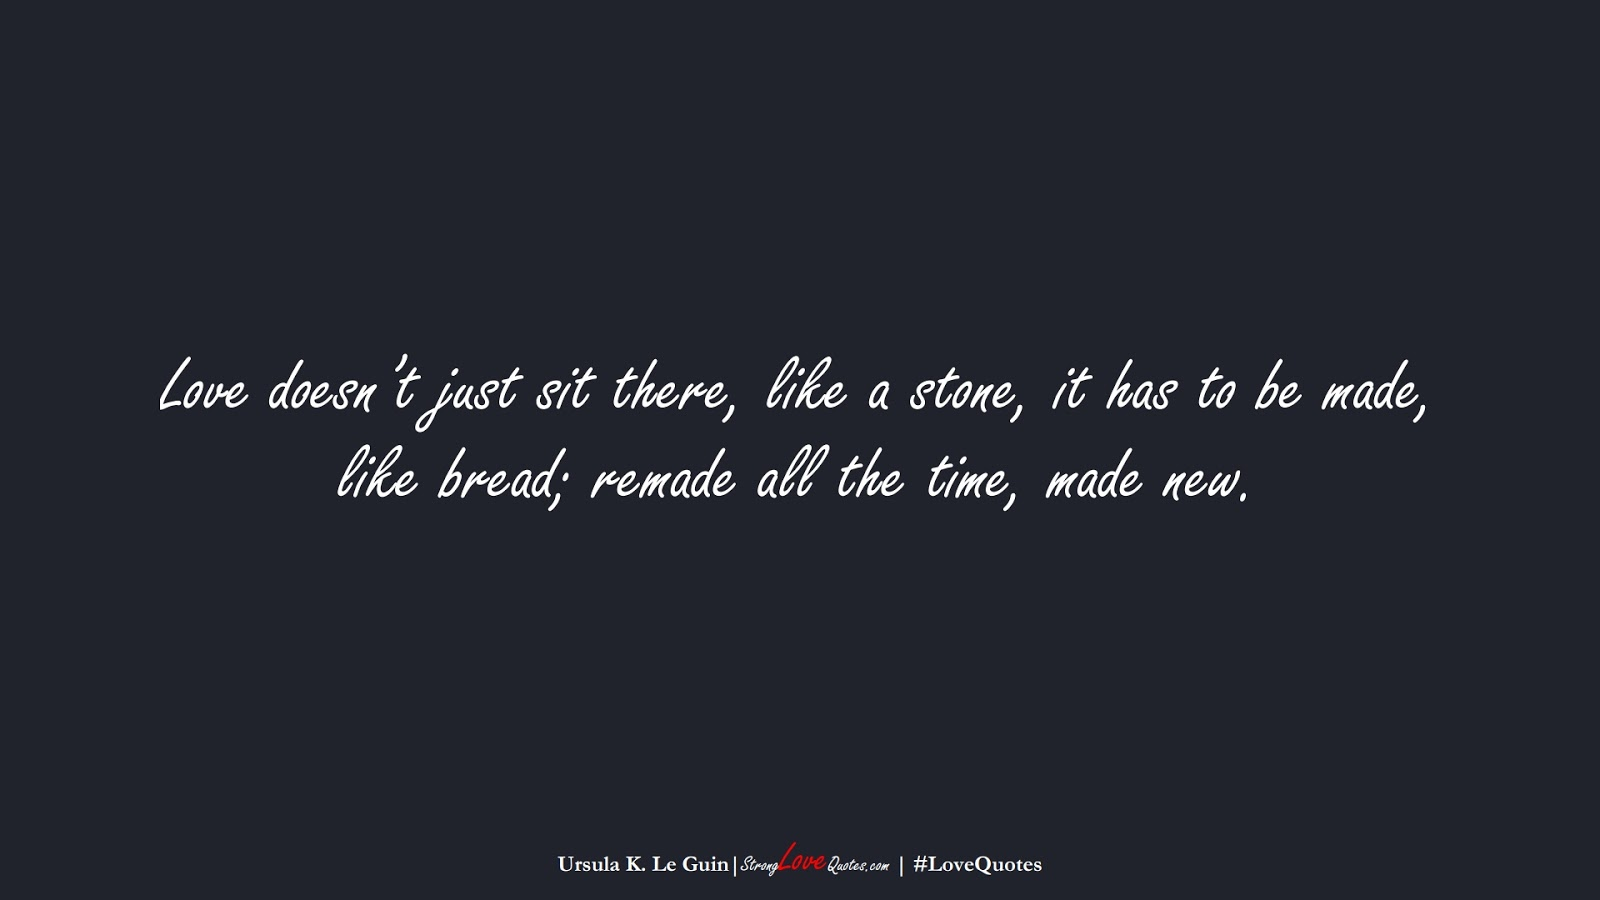 Love doesn't just sit there, like a stone, it has to be made, like bread; remade all the time, made new. (Ursula K. Le Guin);  #LoveQuotes